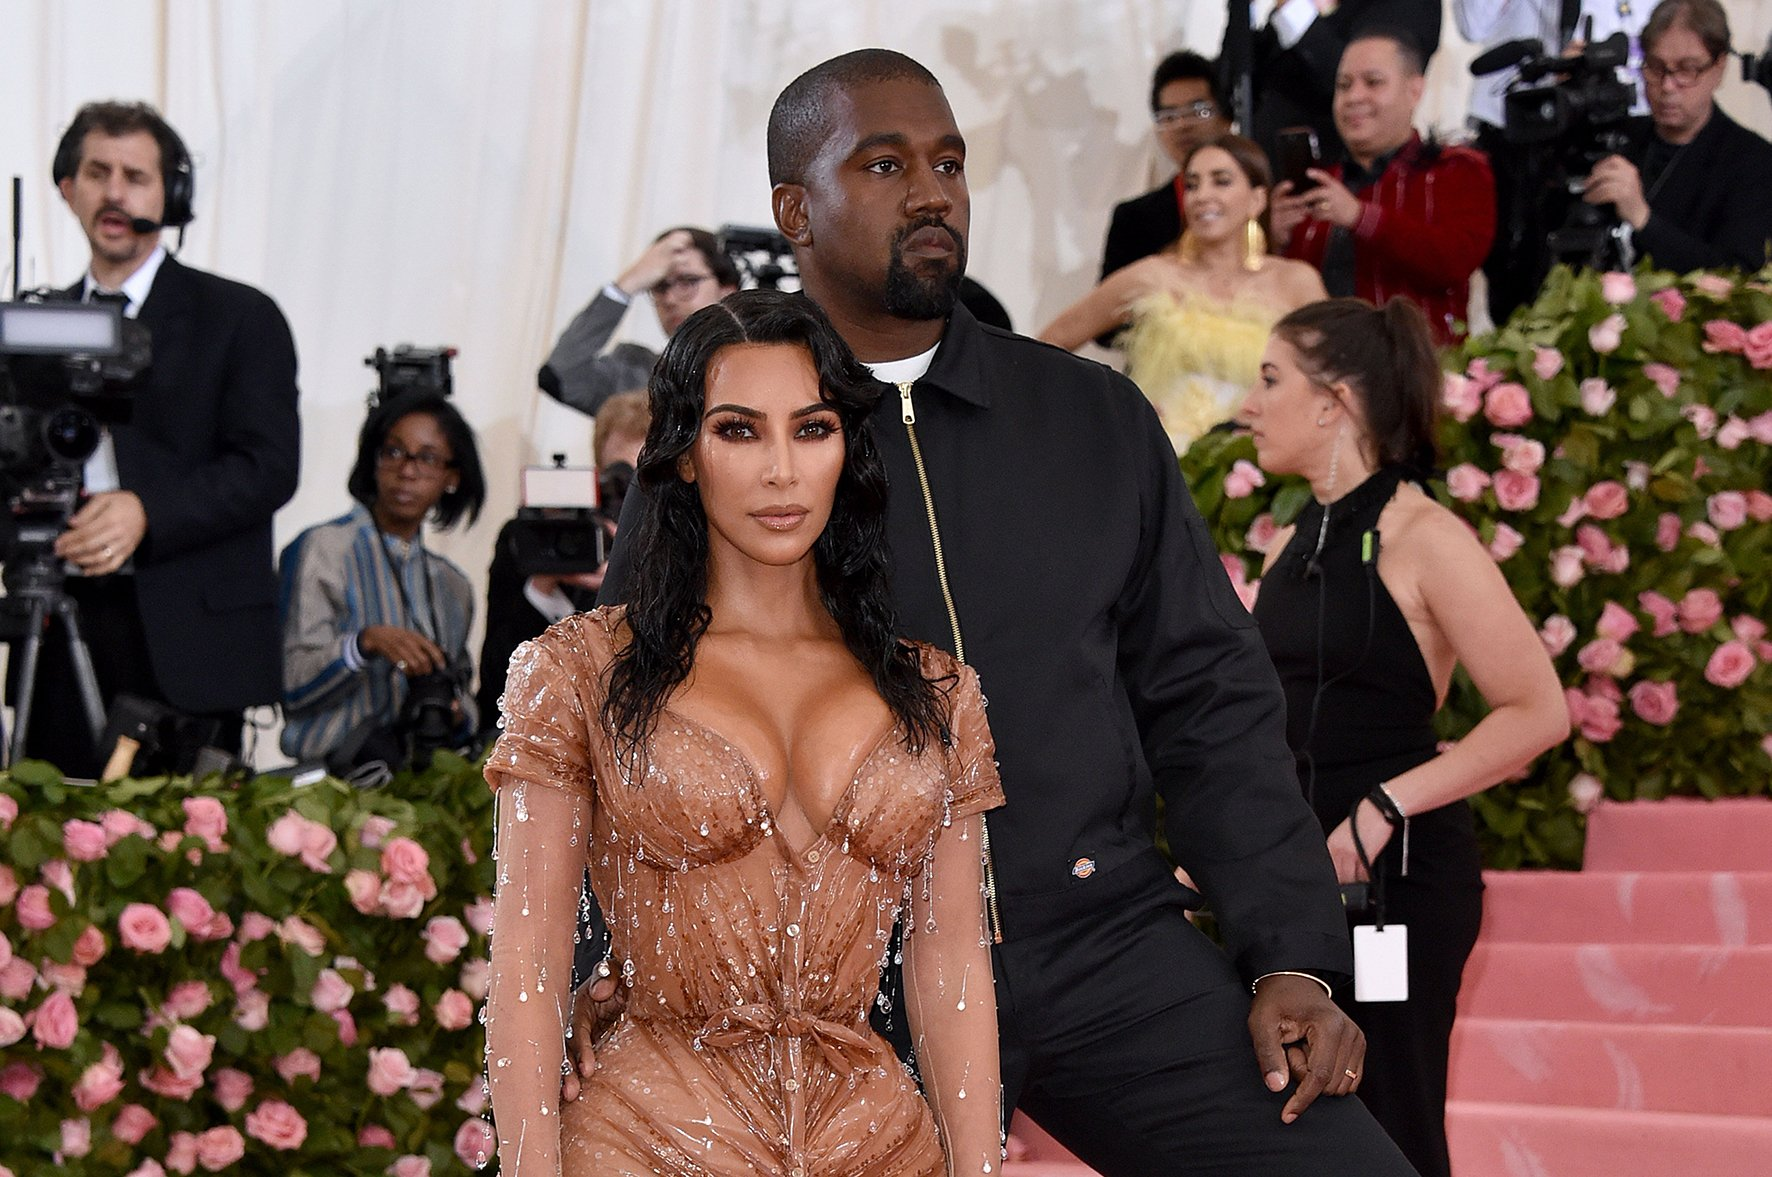 anye West & Kim Kardashian at the 2019 Met Gala, New York City | Photo: Getty Images